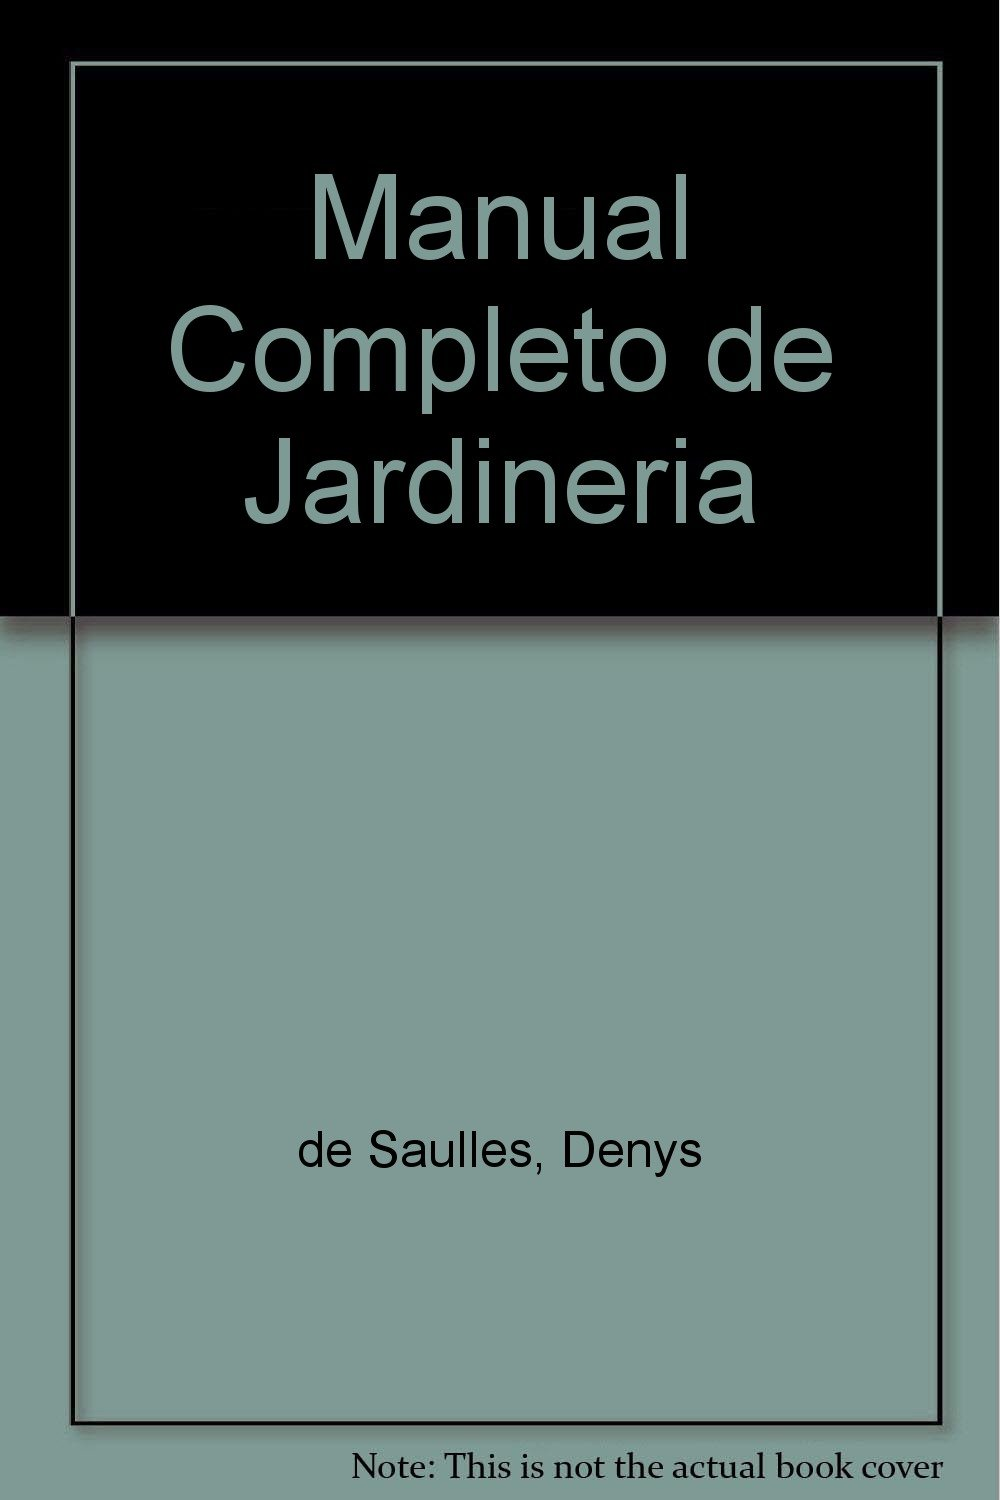 Manual Completo de Jardineria (Spanish Edition): Denys de Saulles:  9788487535673: Amazon.com: Books